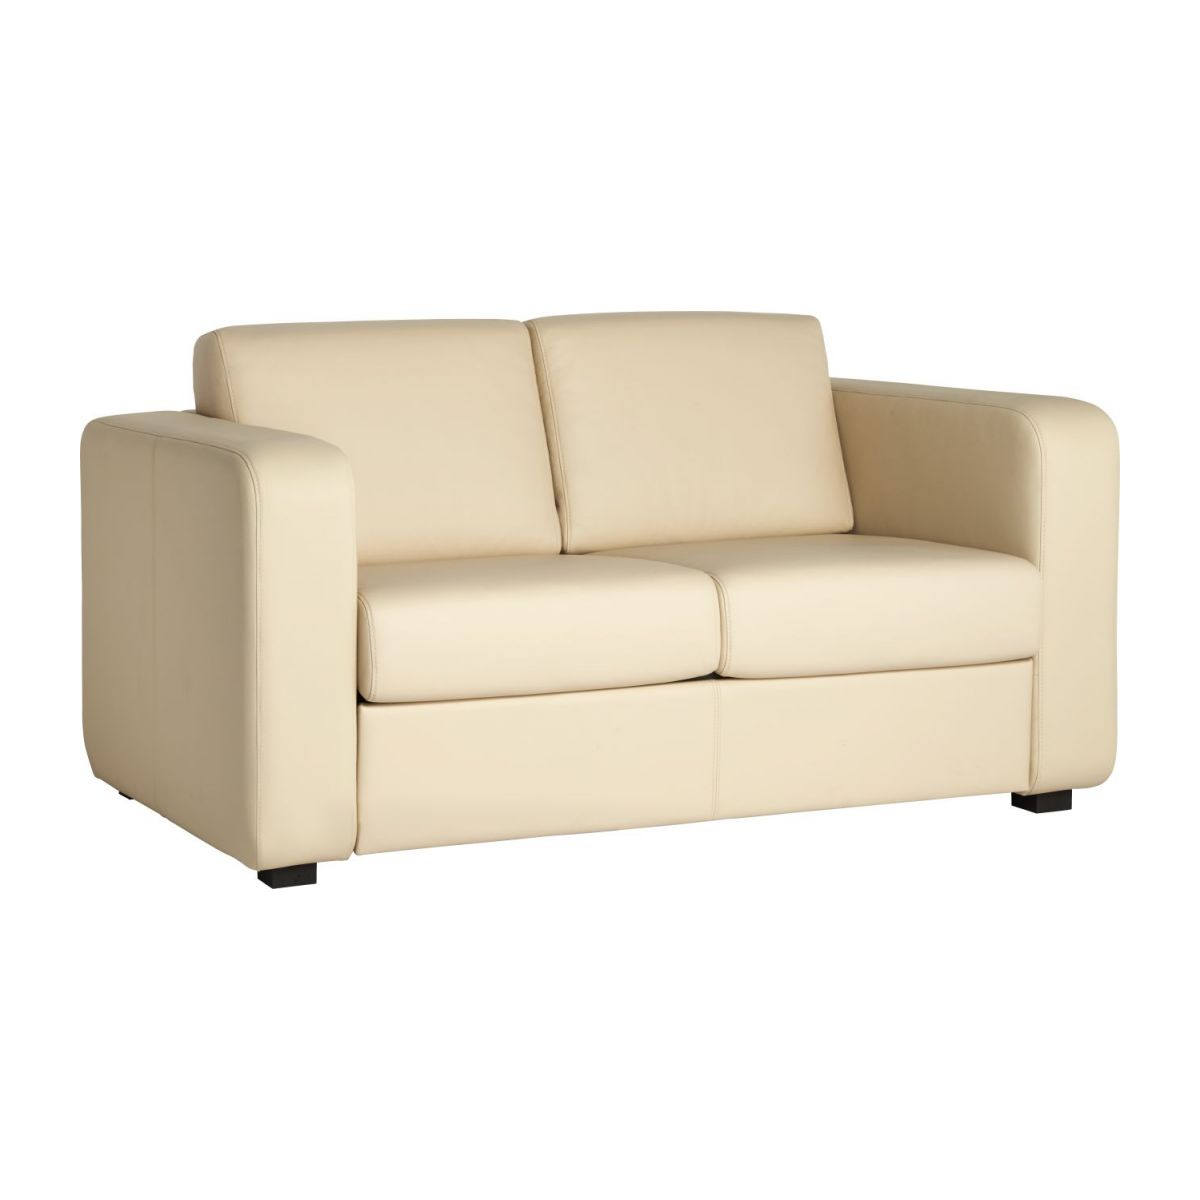 Leather sofa bed n°1